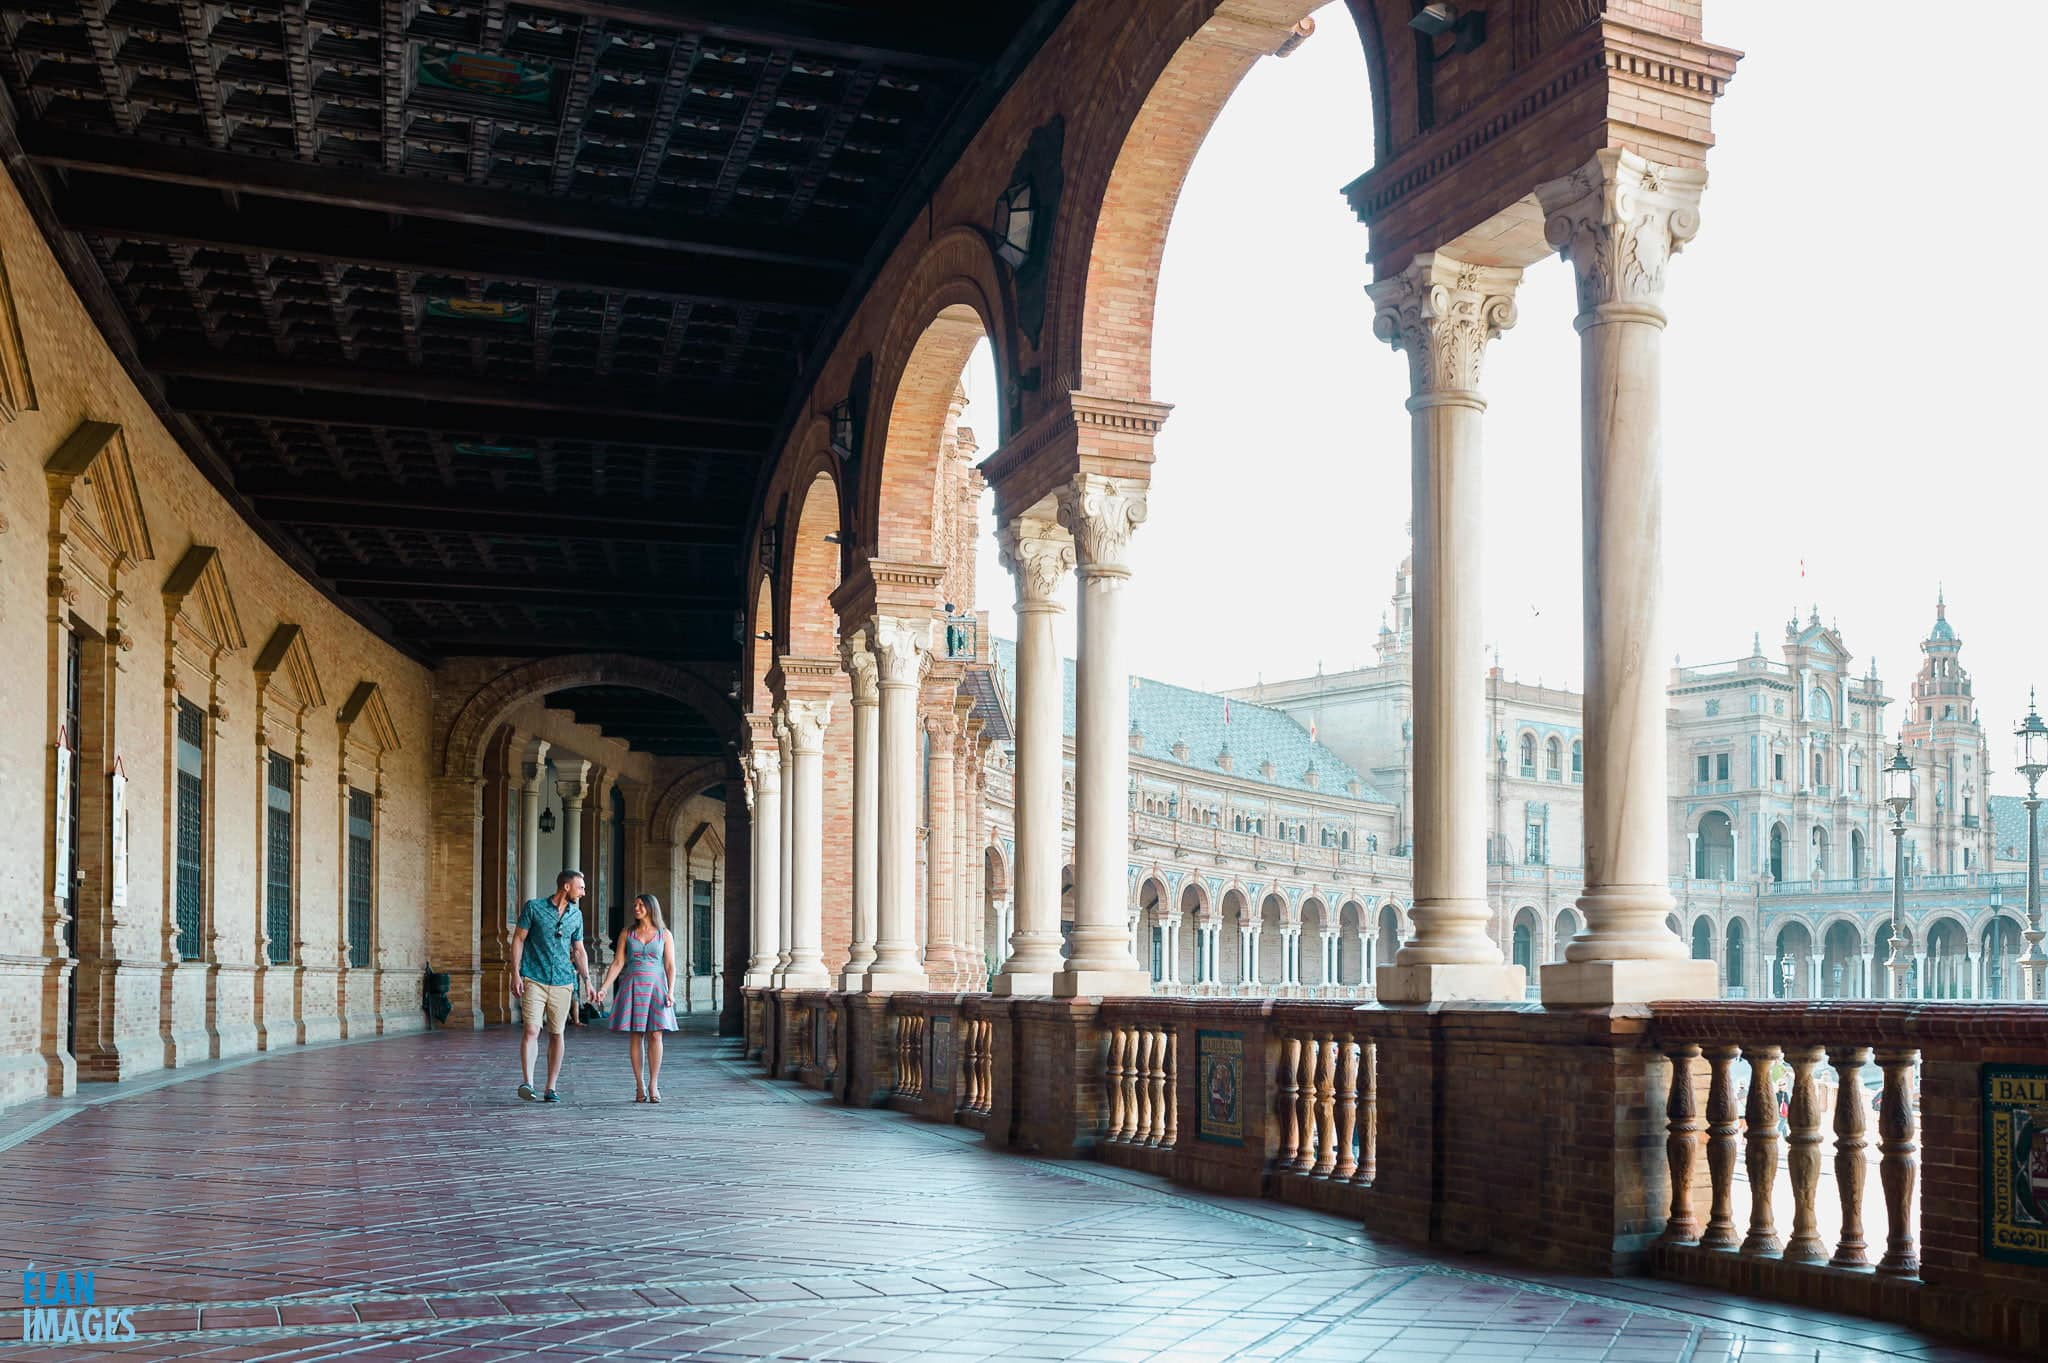 Plaza de España, Seville – Engagement Photo Shoot 5